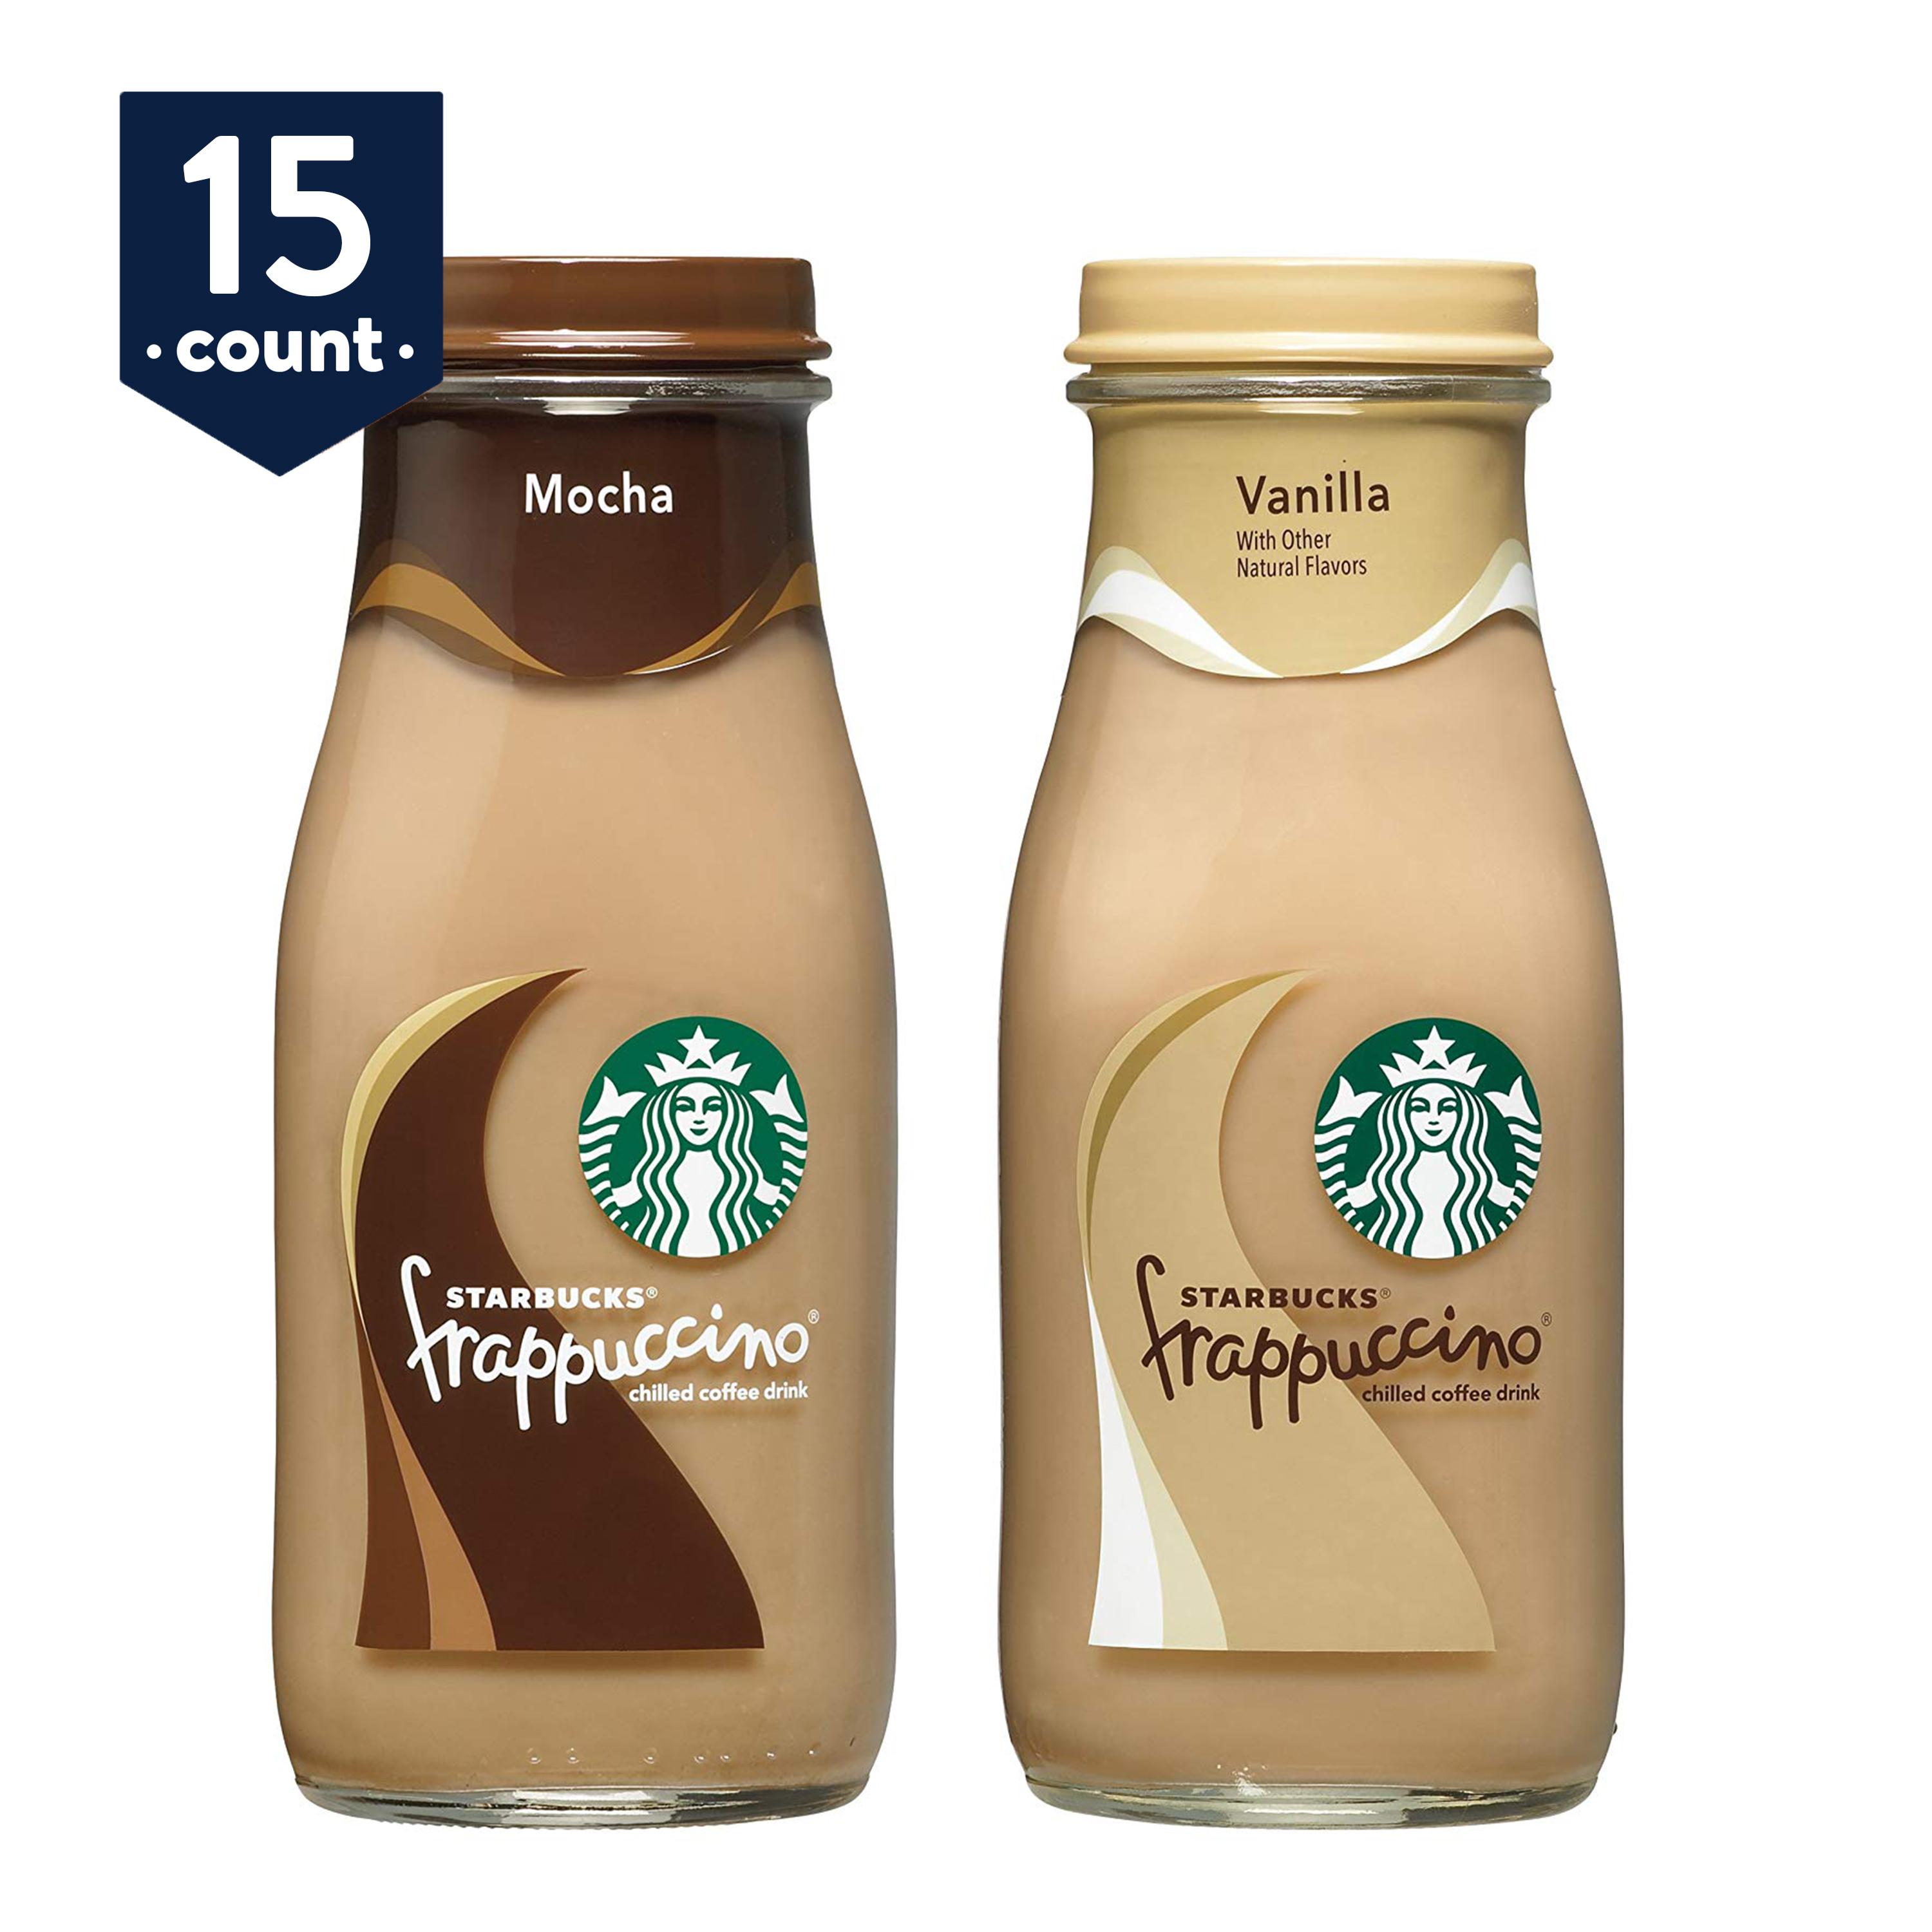 (15 Bottles) Starbucks Frappuccino Coffee Drink, Mocha and Vanilla Flavors, 9.5 oz Glass Bottles